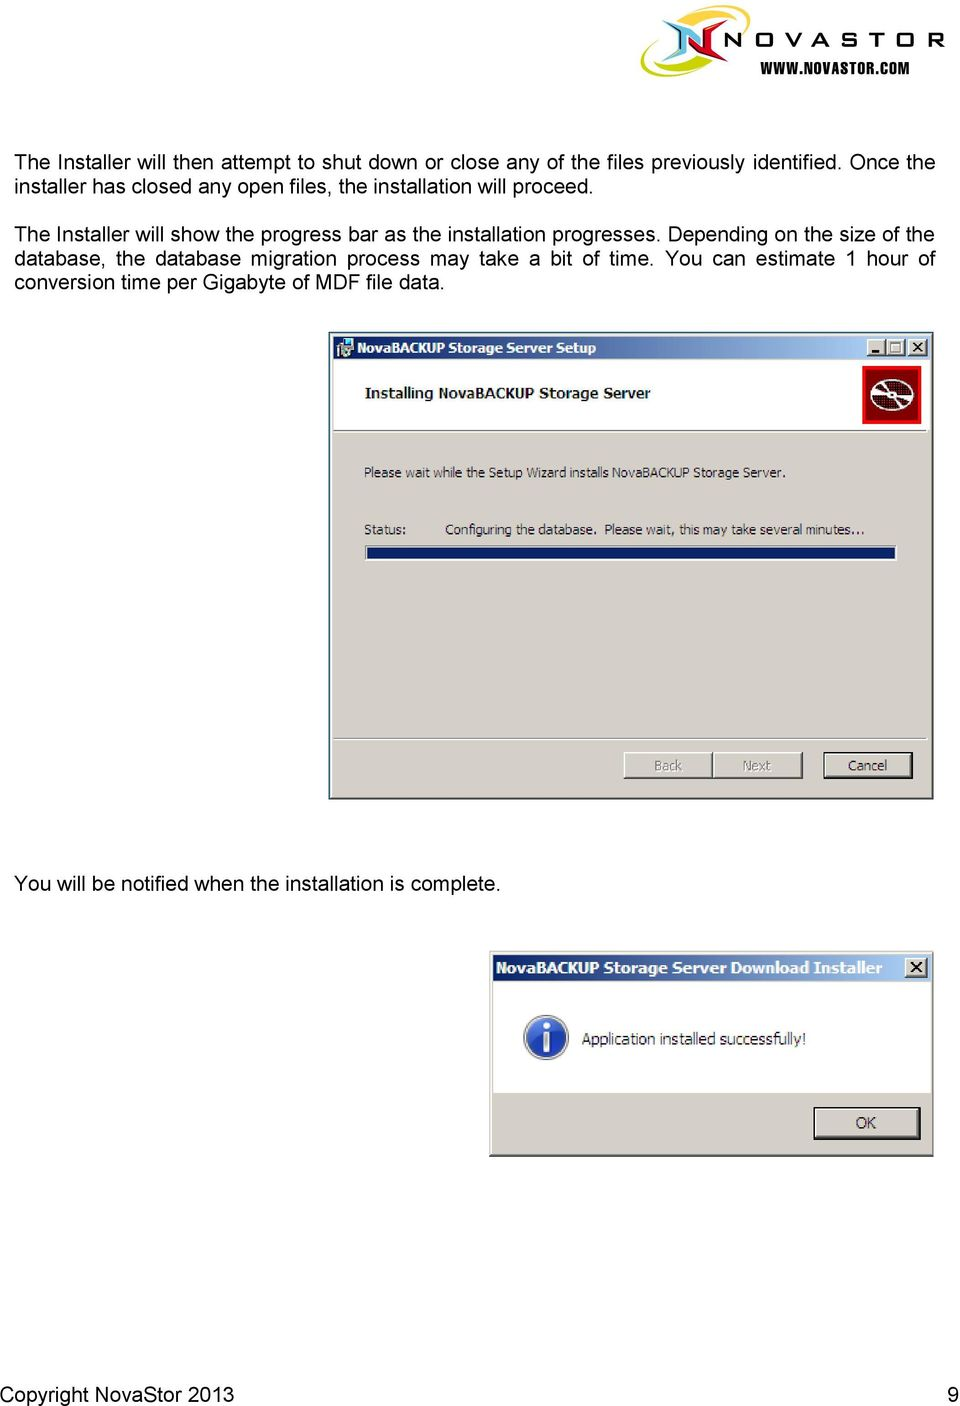 The Installer will show the progress bar as the installation progresses.